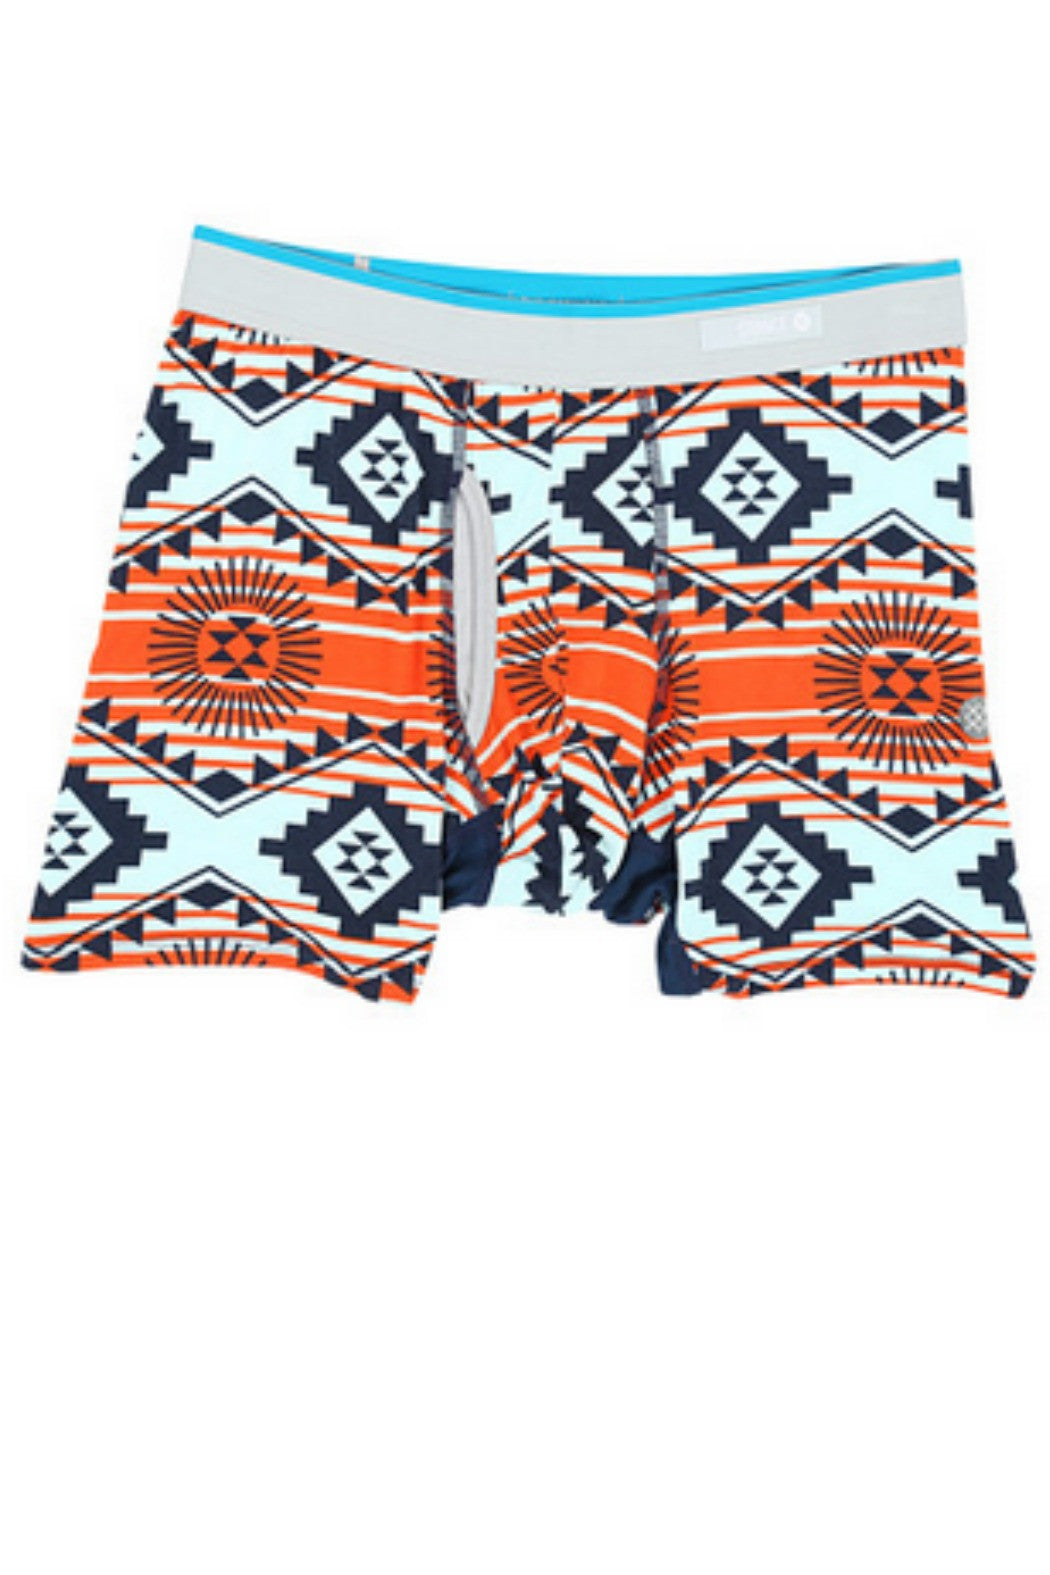 Stance- Sunburst Underwear in Red - R+D Hipster Emporium | Womens & Mens Clothing - 1